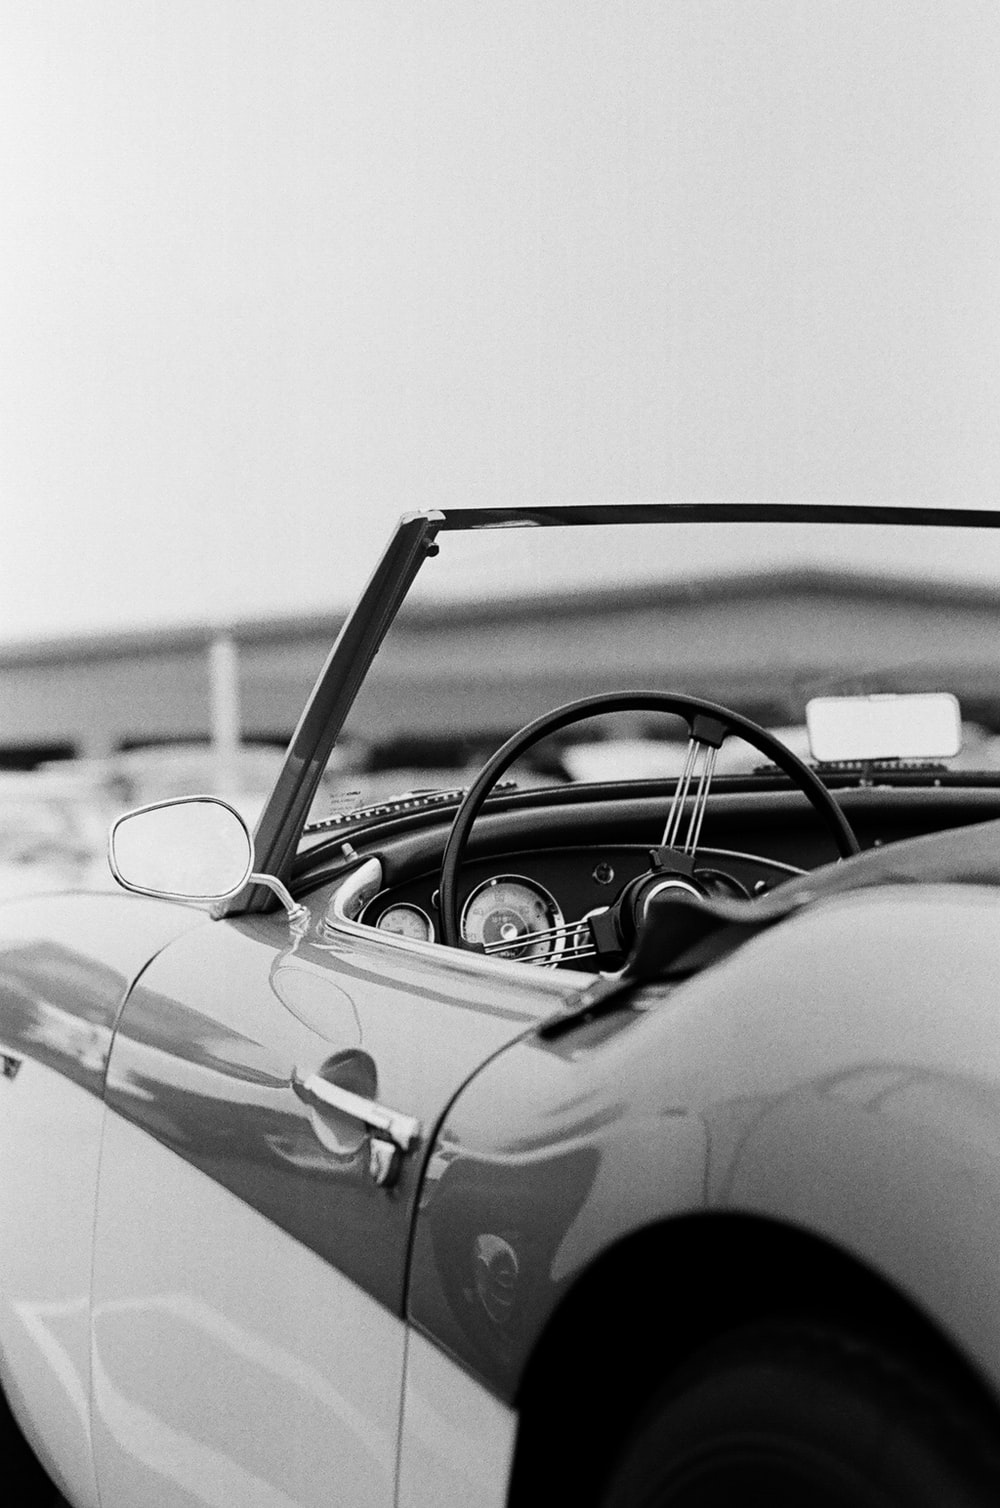 grayscale photo of classic car